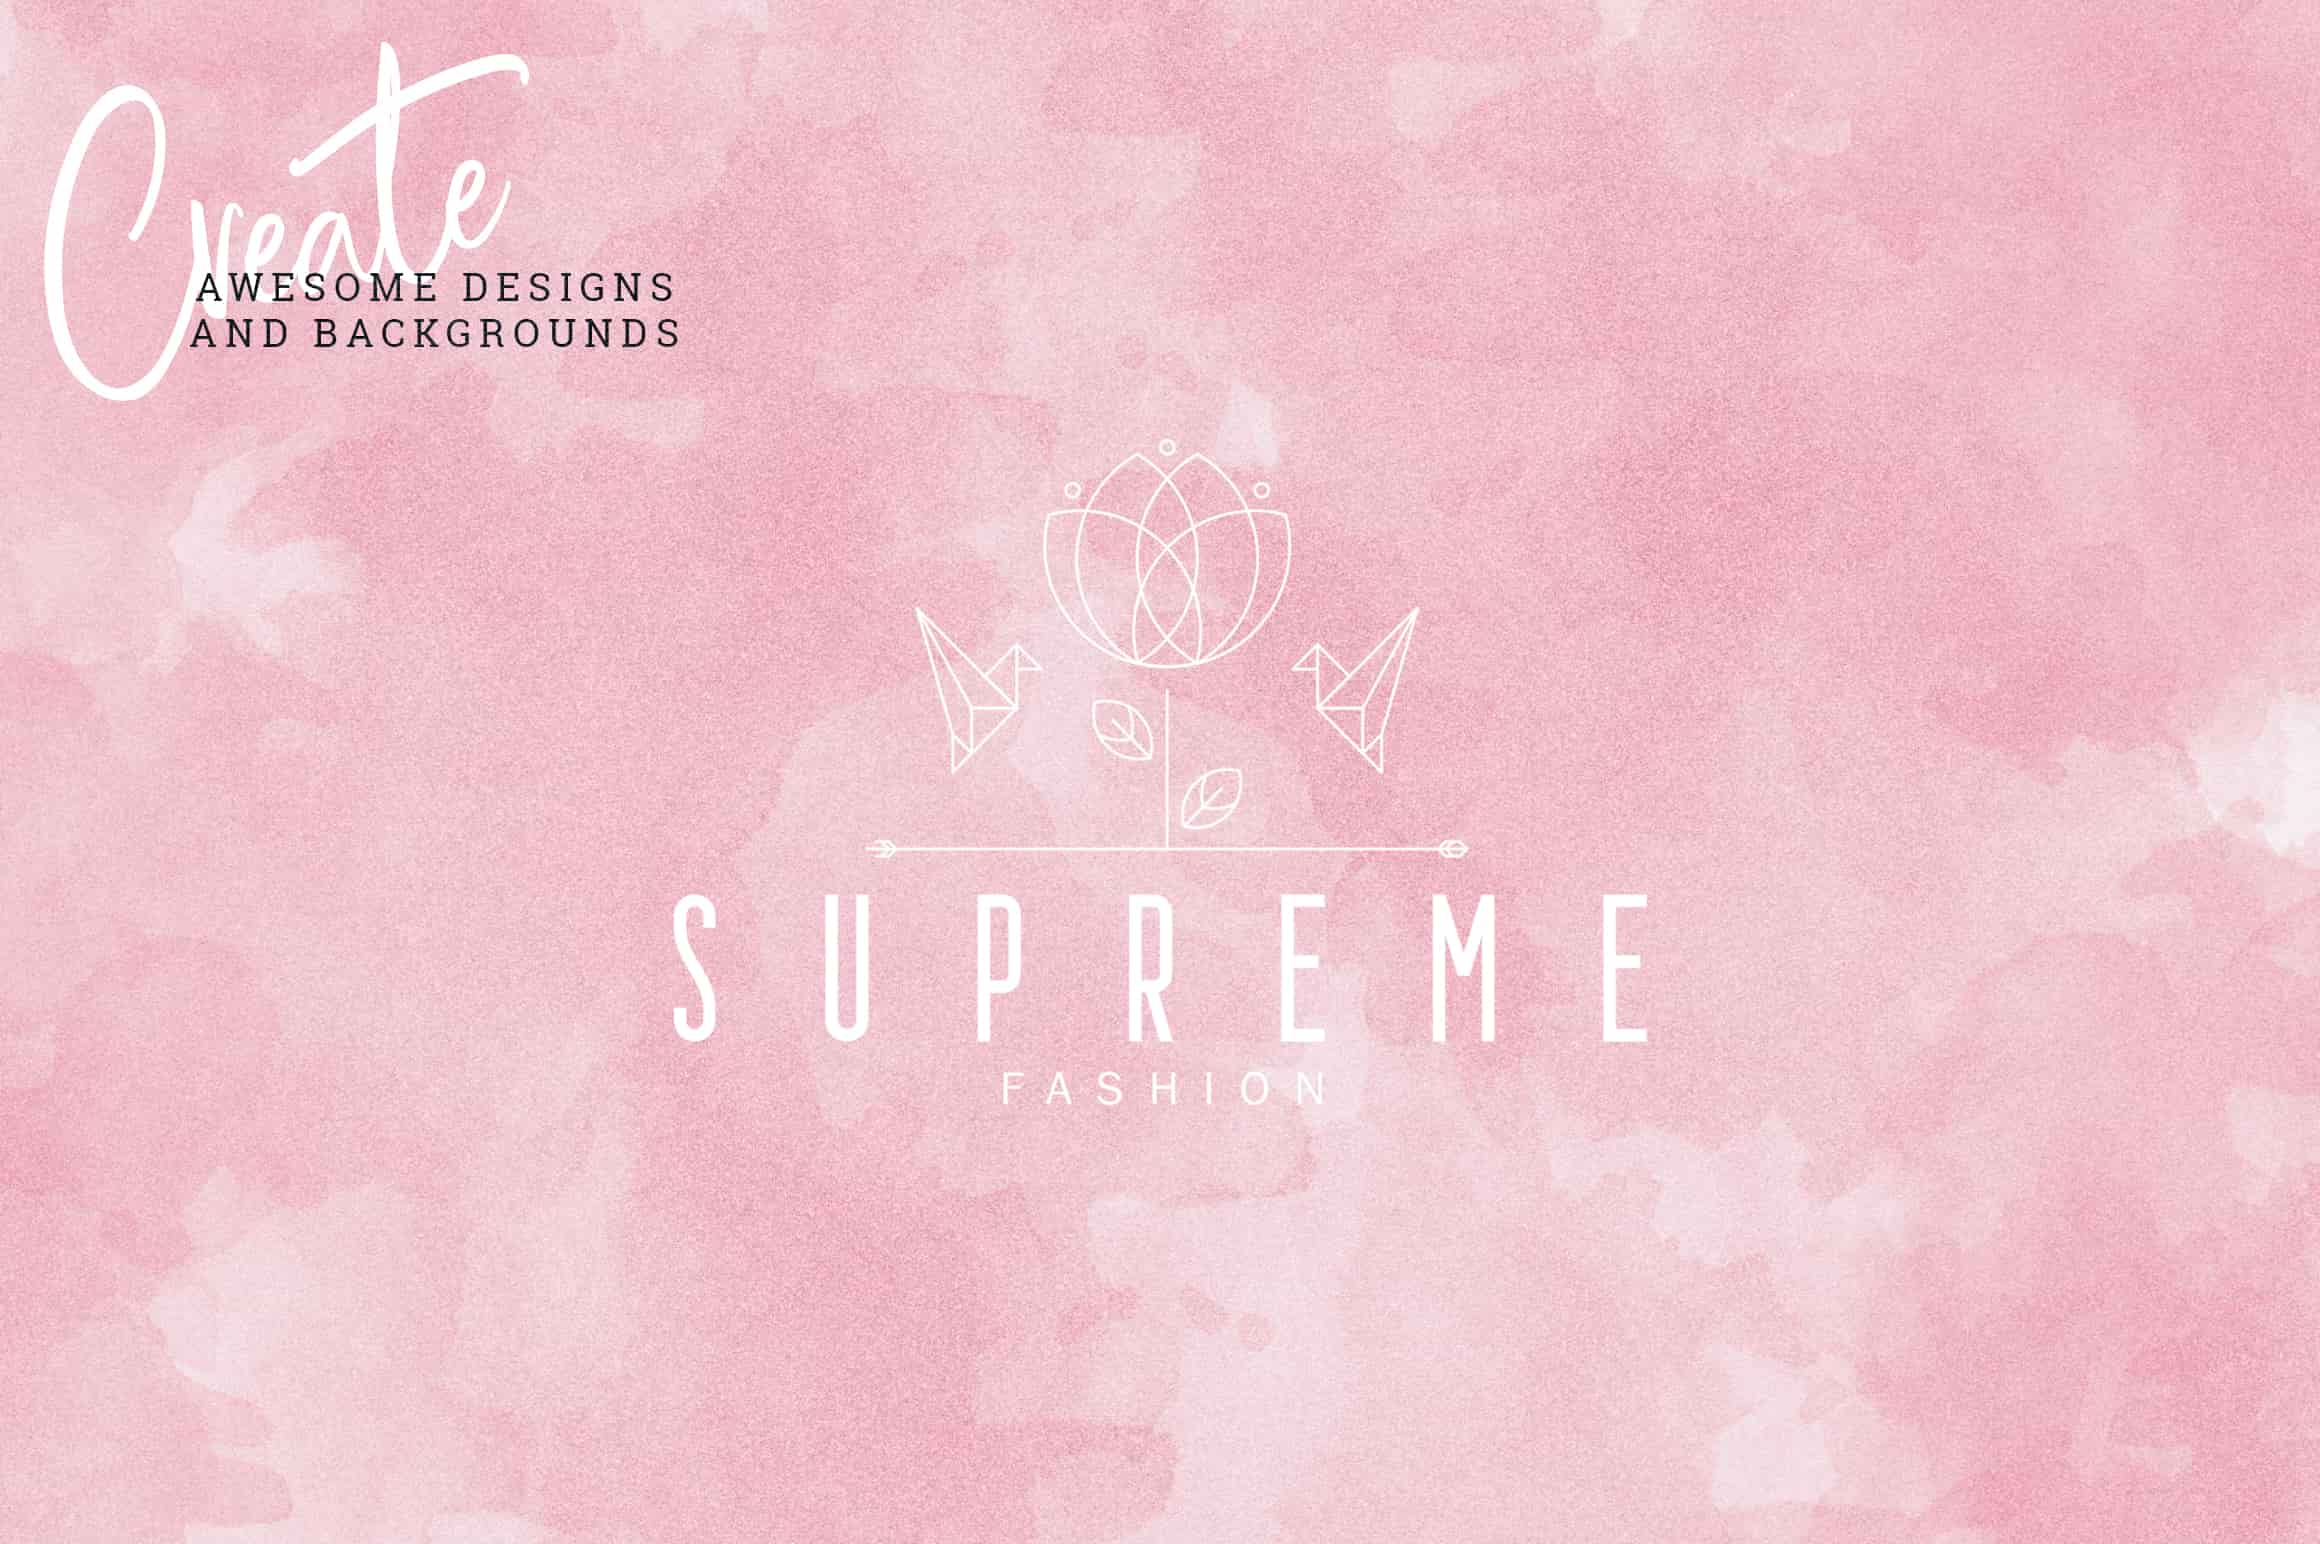 Watercolor matte pink background with a subtle and delicate logo.